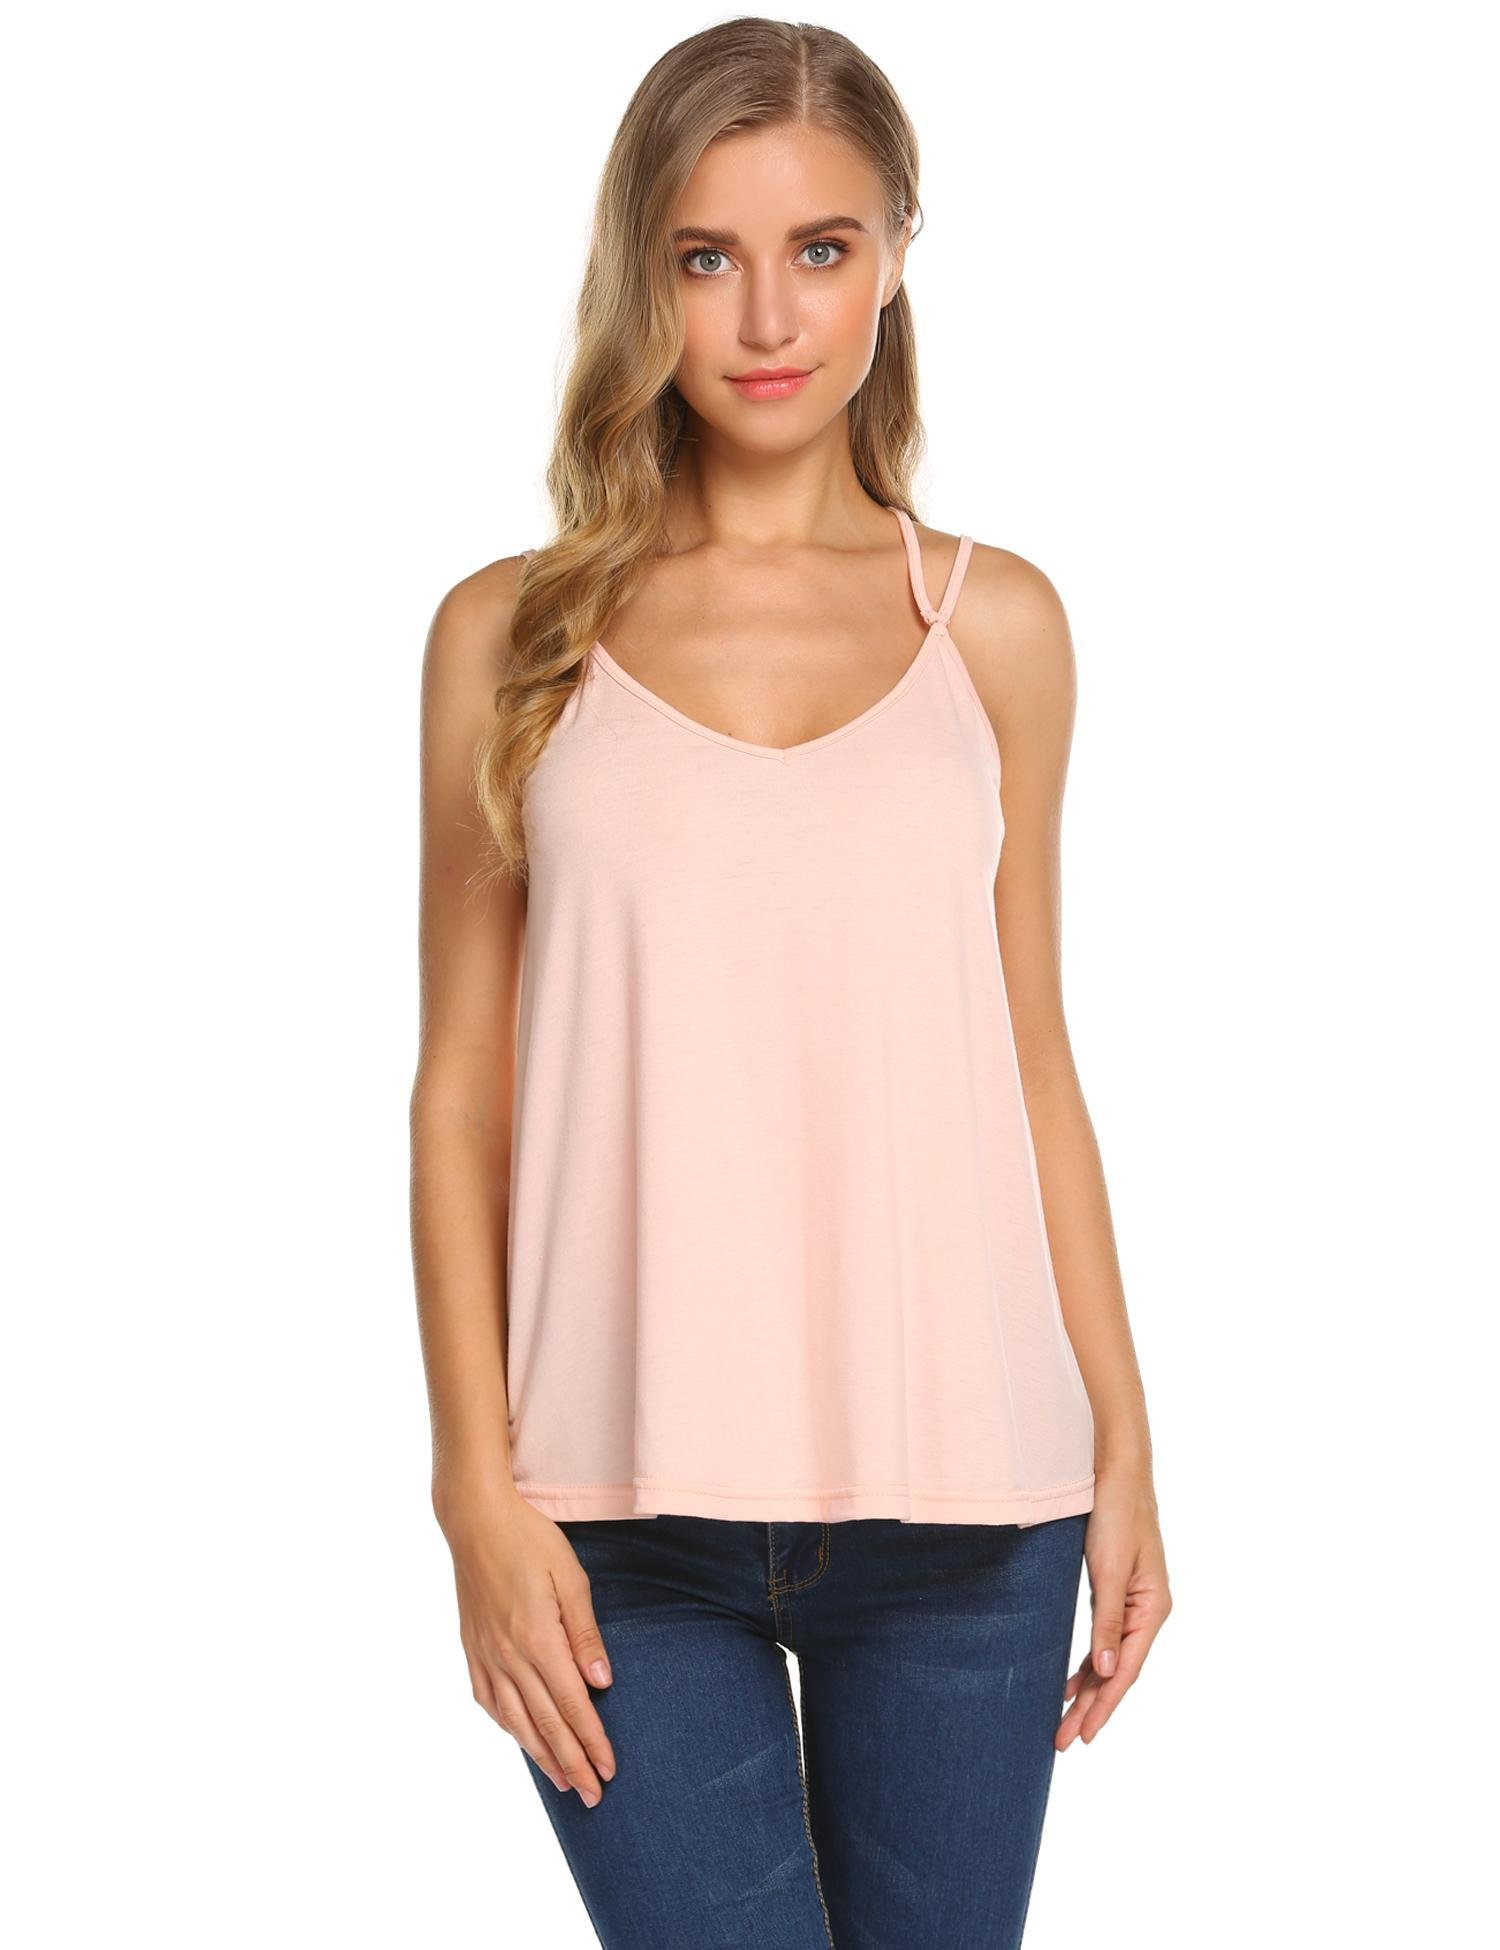 Grabsa Women's Casual V-Neck Cross Back Blouse Strappy Sleeveless Tank Shocking Pink M